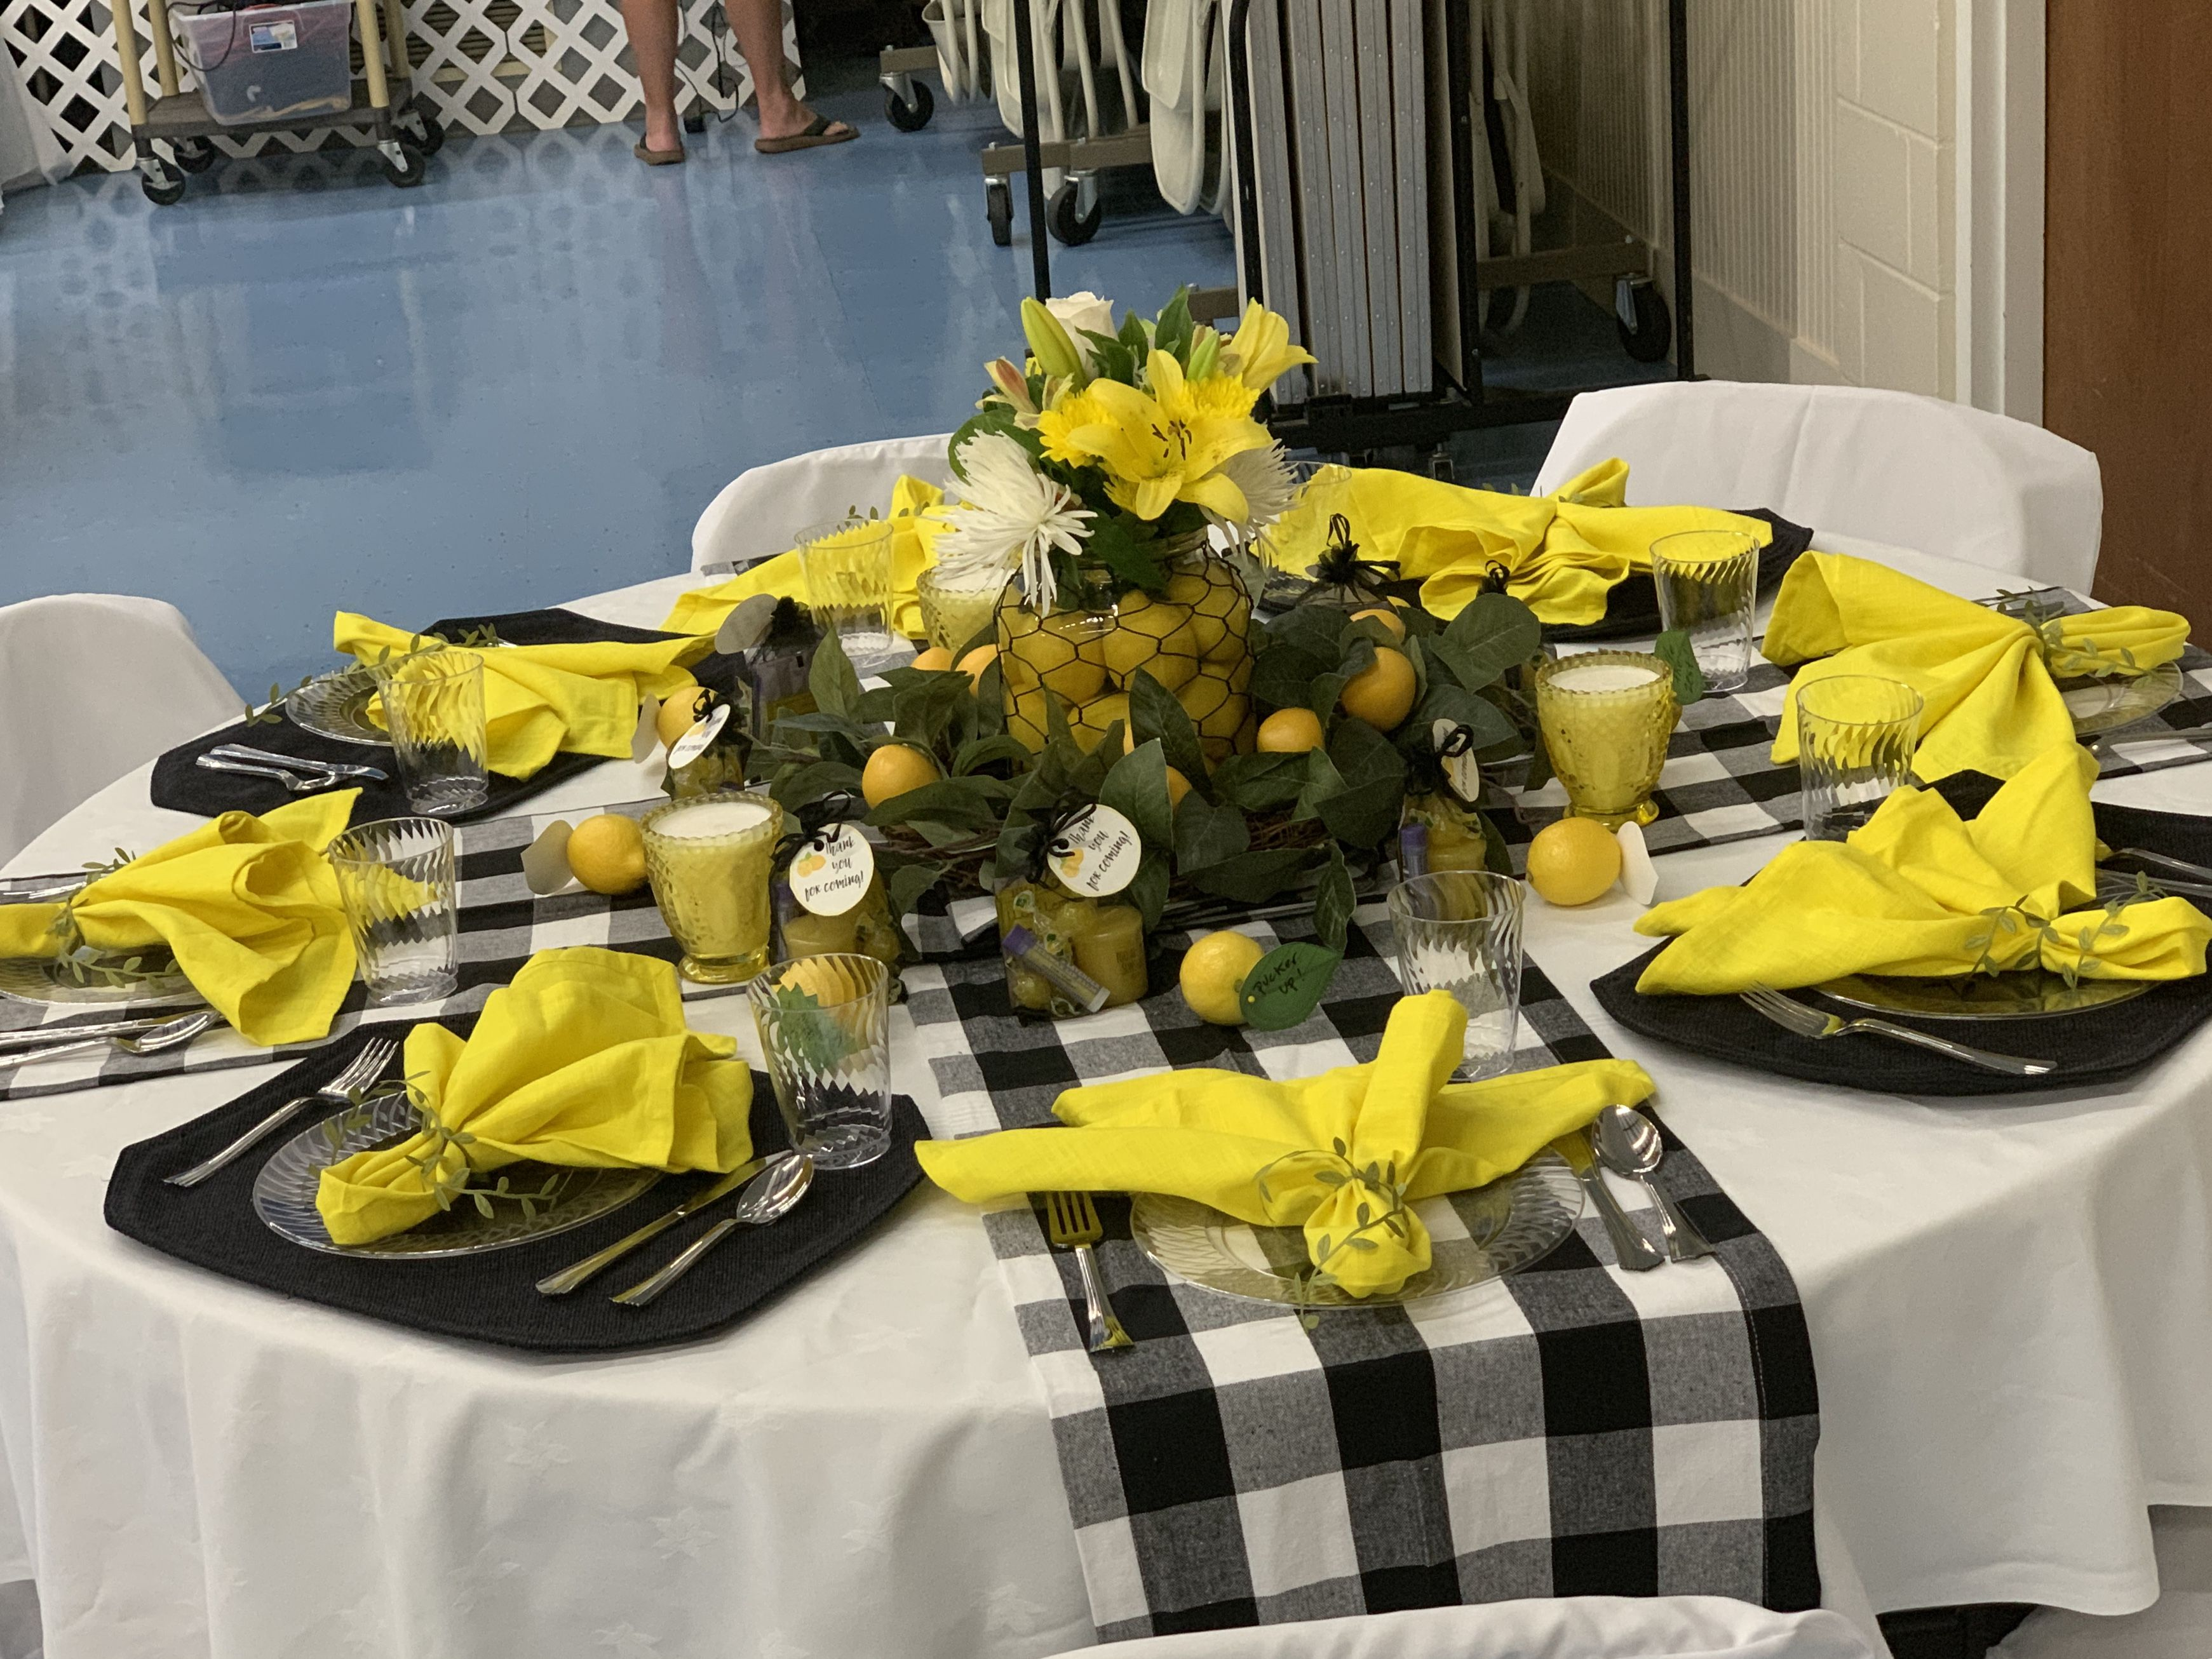 Buffalo Plaid Checked Table Runners From Amazon My Black Placemats Yellow Napkins From Amazon Tie Lemon Table Decor Lemon Decor Black And White Centerpieces